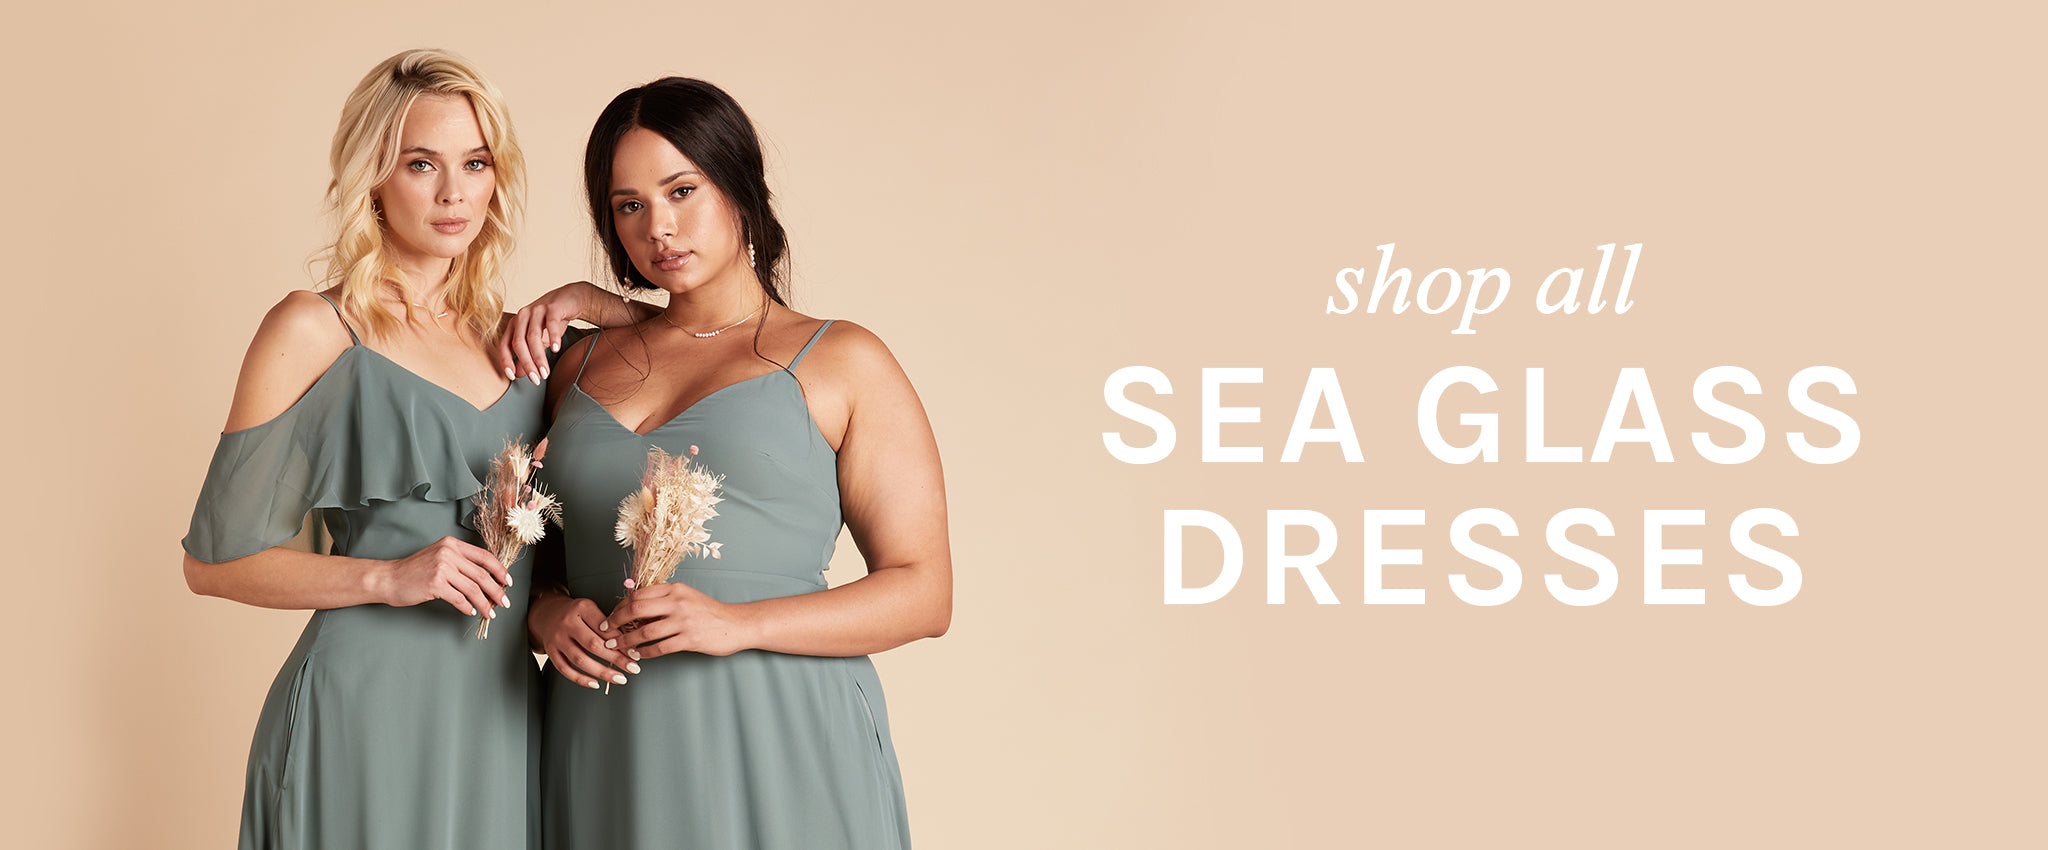 Shop All Sea Glass Dresses